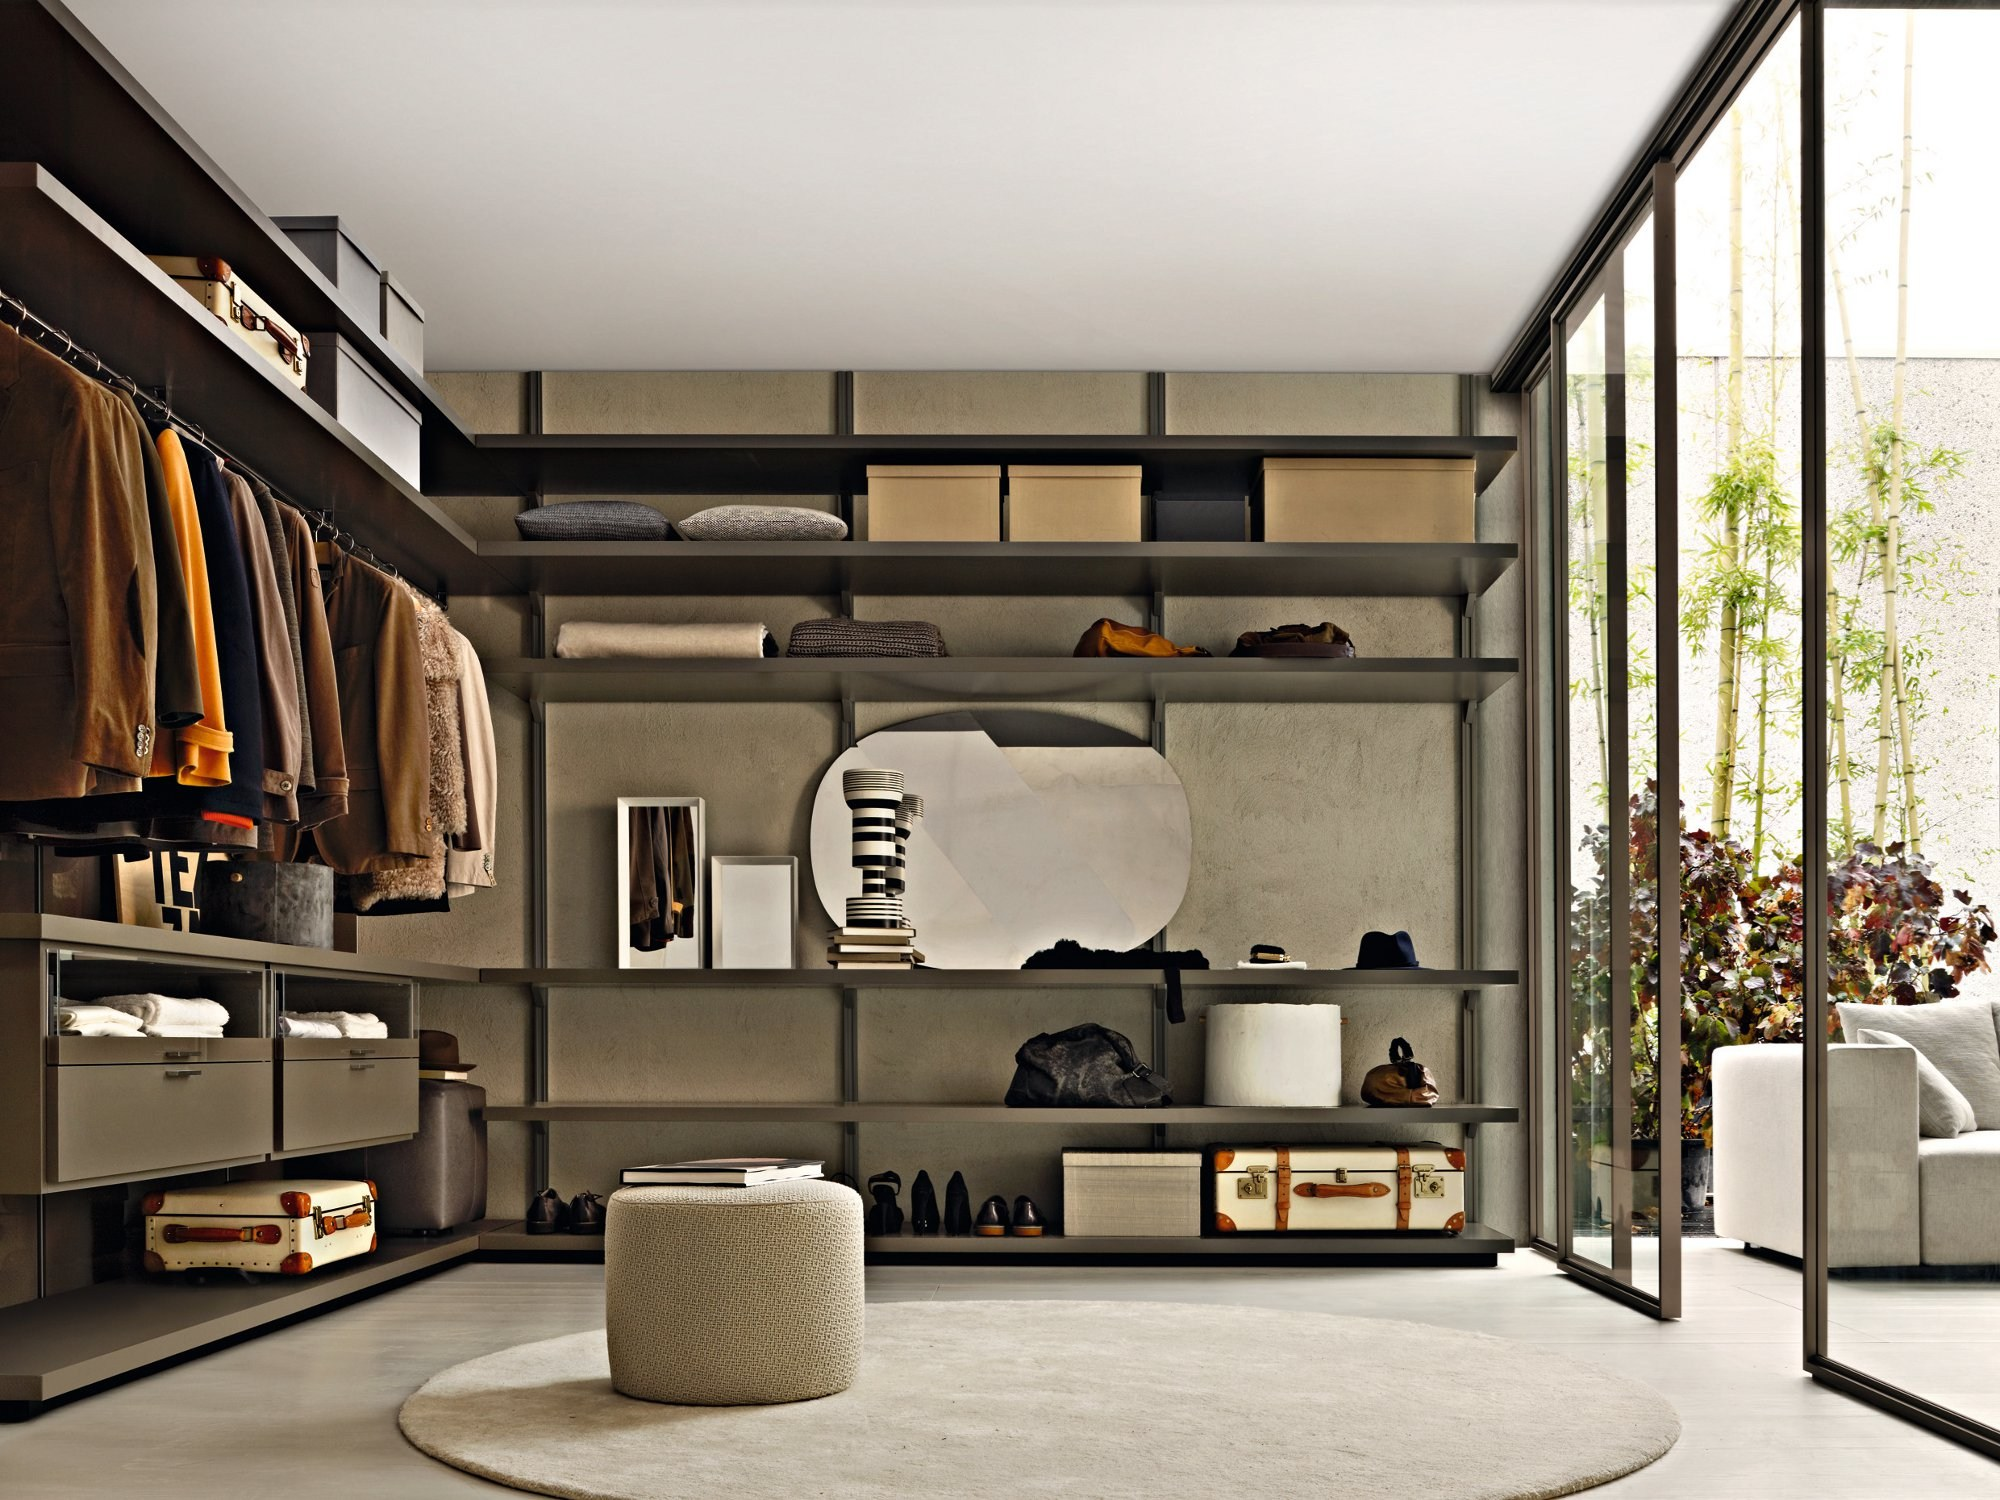 molteni c gliss walk in wardrobe buy from campbell watson uk. Black Bedroom Furniture Sets. Home Design Ideas